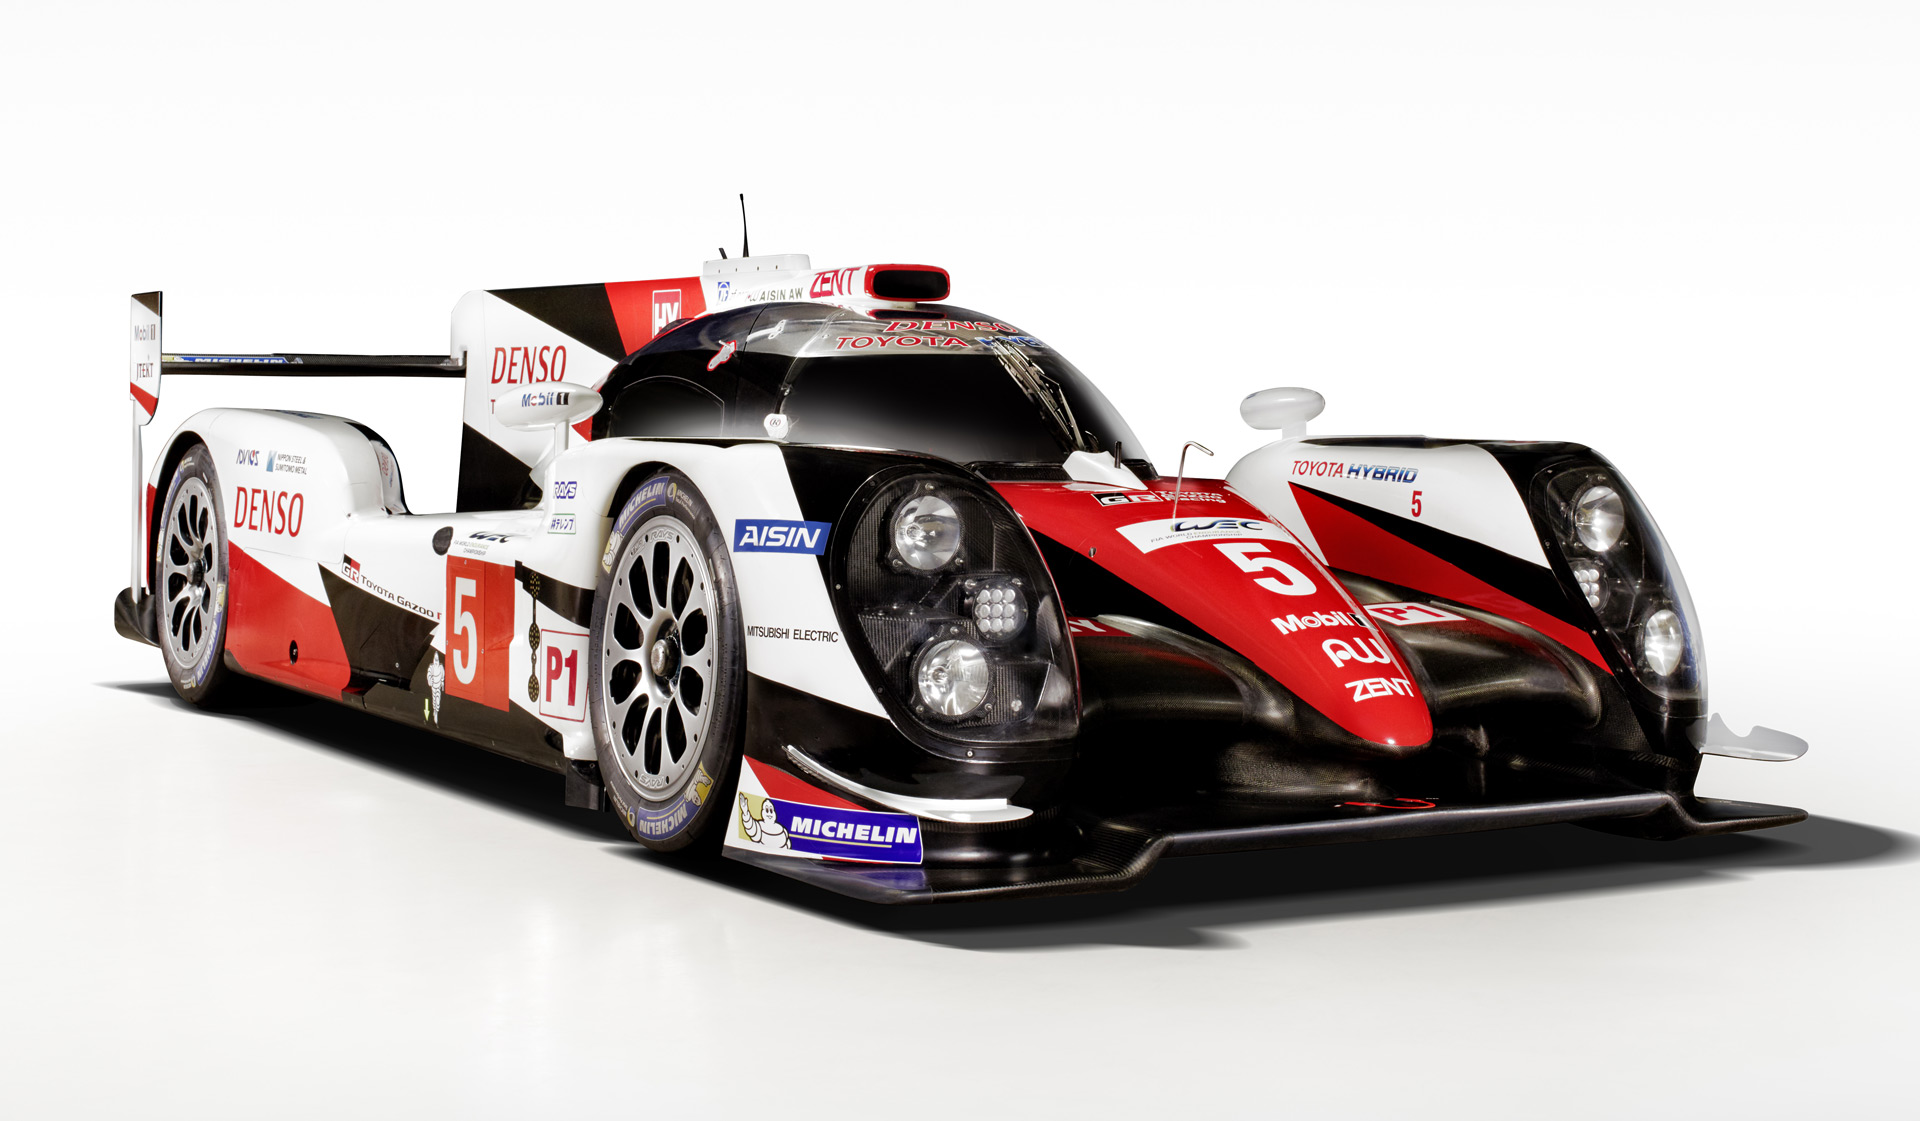 toyota ts050 hybrid for 2016 wec revealed with twin turbo v 6 986 hp video. Black Bedroom Furniture Sets. Home Design Ideas